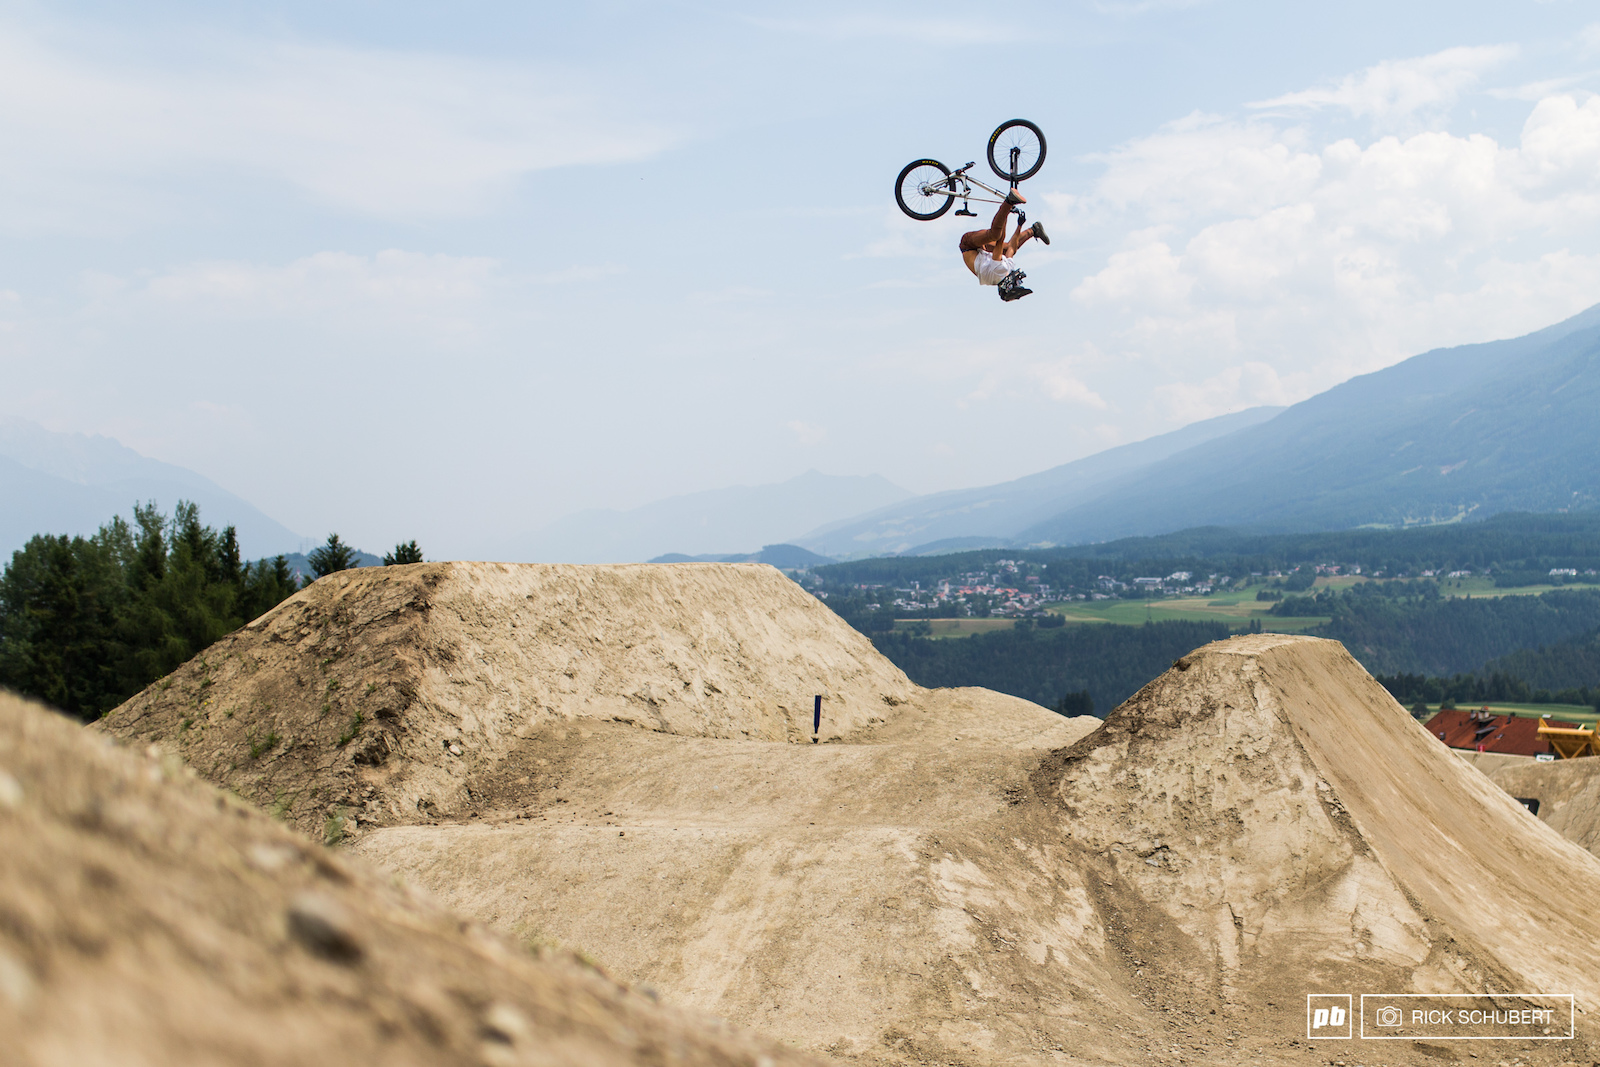 Nico Scholze showcased crazy backflip combos just like this heelclicker flip on the first set